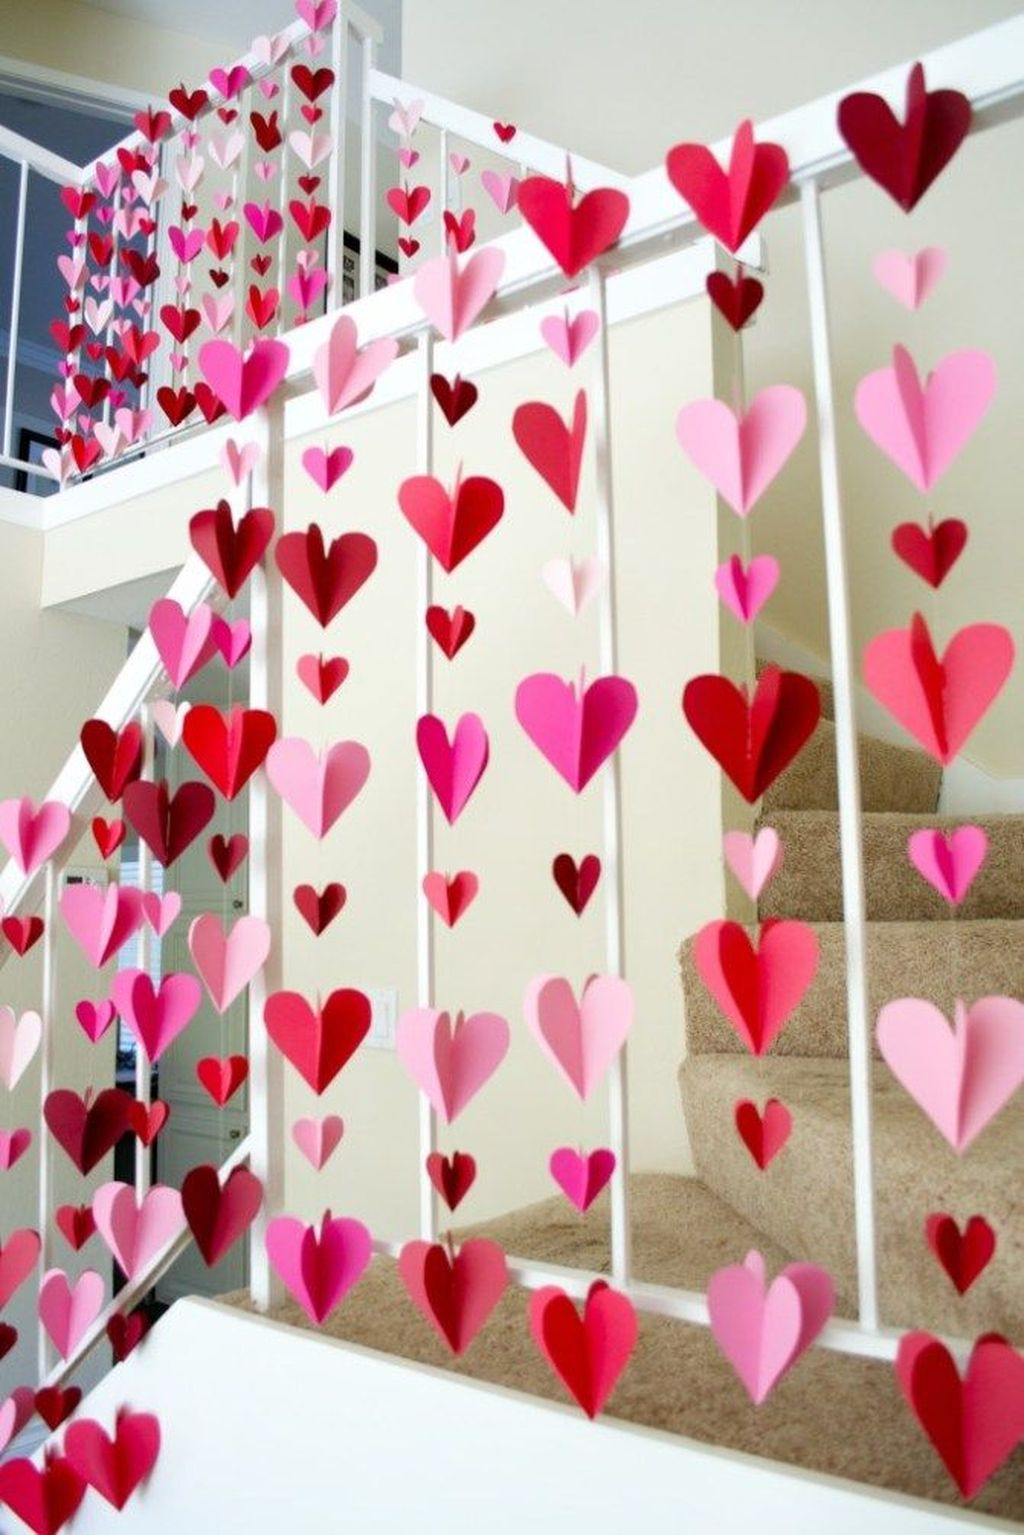 Inspiring Valentine Crafts Ideas For Your Home Decor 38